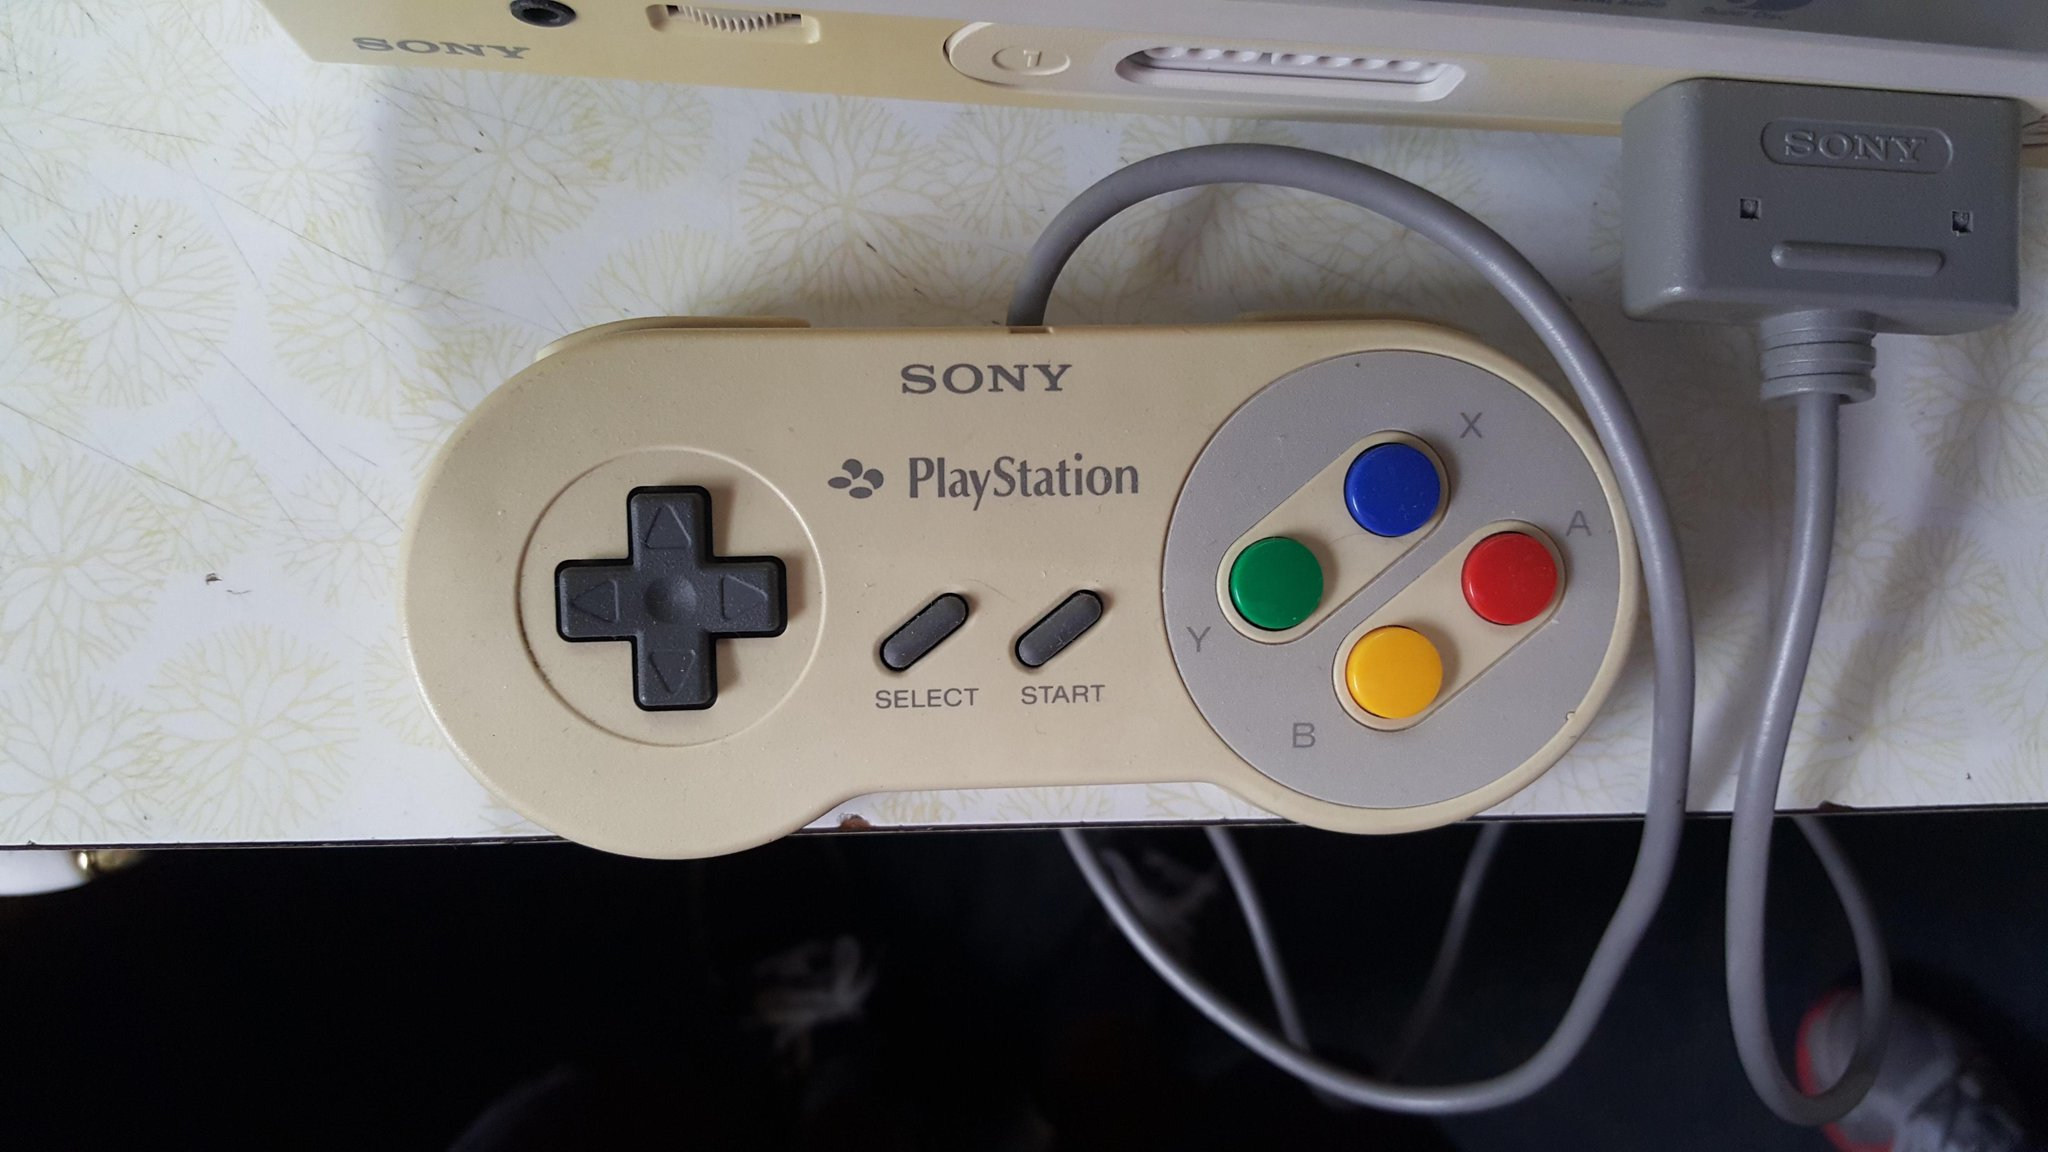 RT @TheNextWeb: This could be the Nintendo PlayStation that never got released http://t.co/KM8dIP1Jm8 http://t.co/q4tjeRUlV7